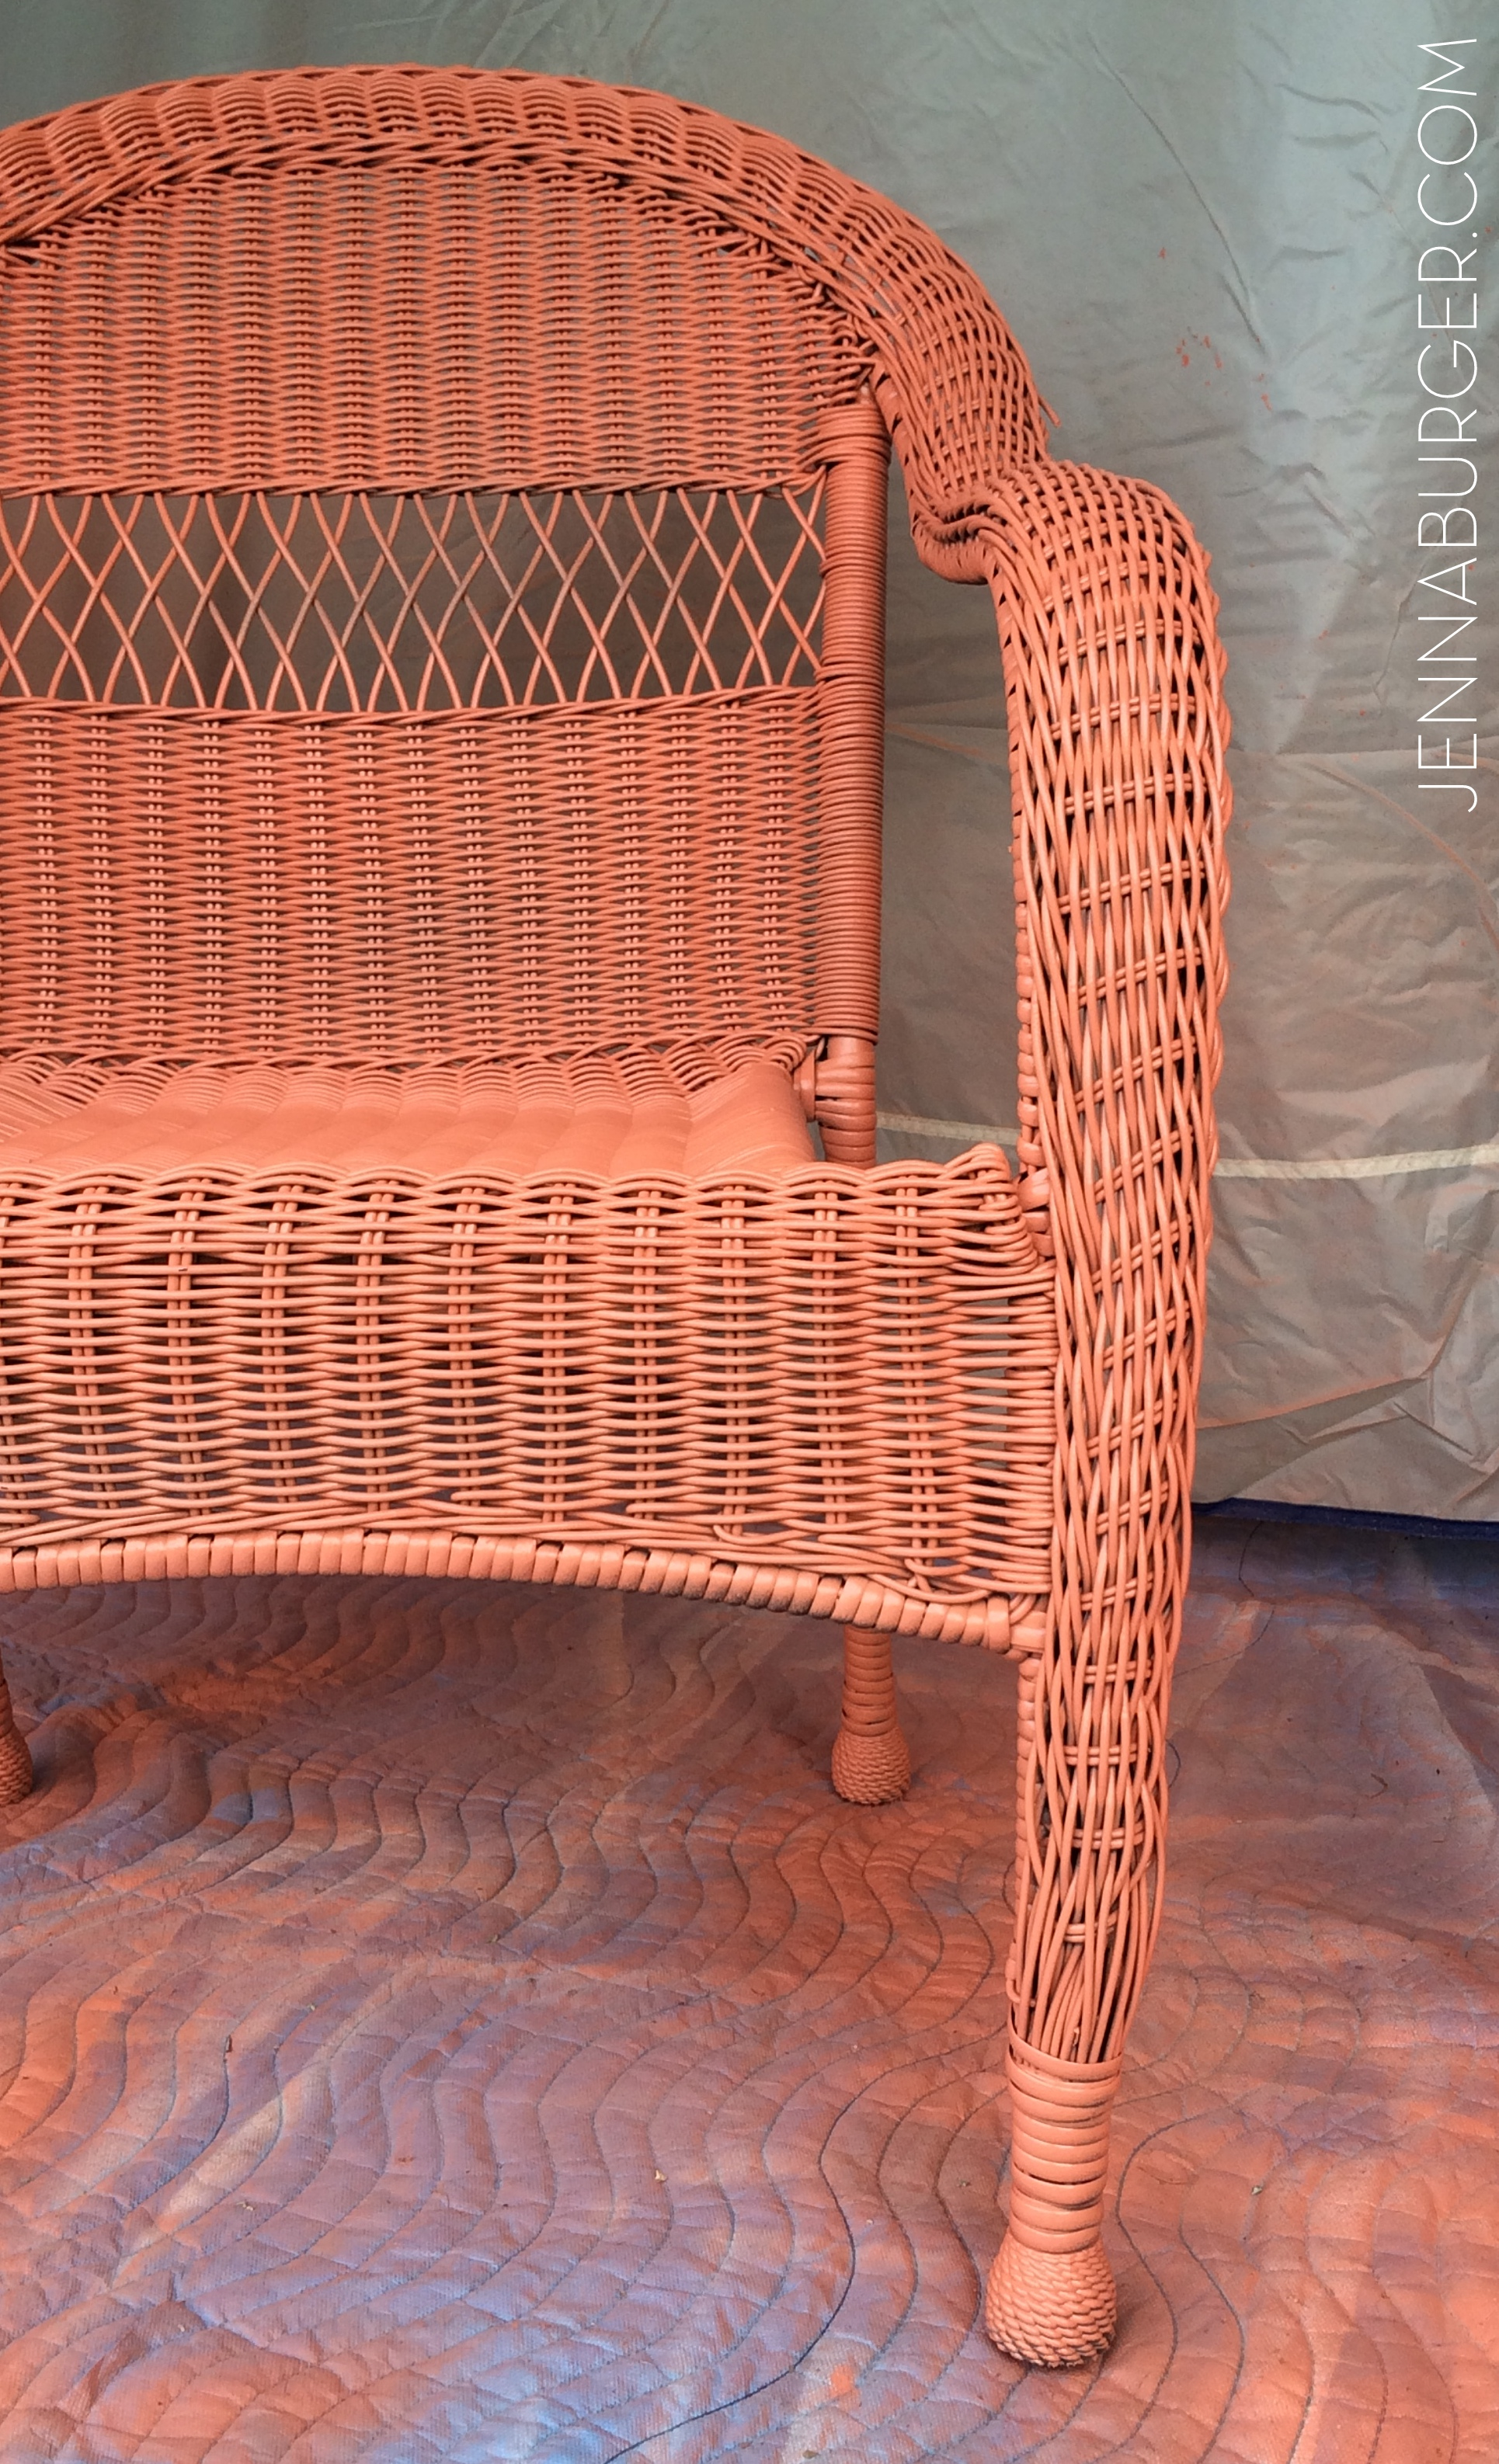 DIY Tutorial For Painting Wicker Using The HomeRight Finish Max Hand  Sprayer. I Painted 2